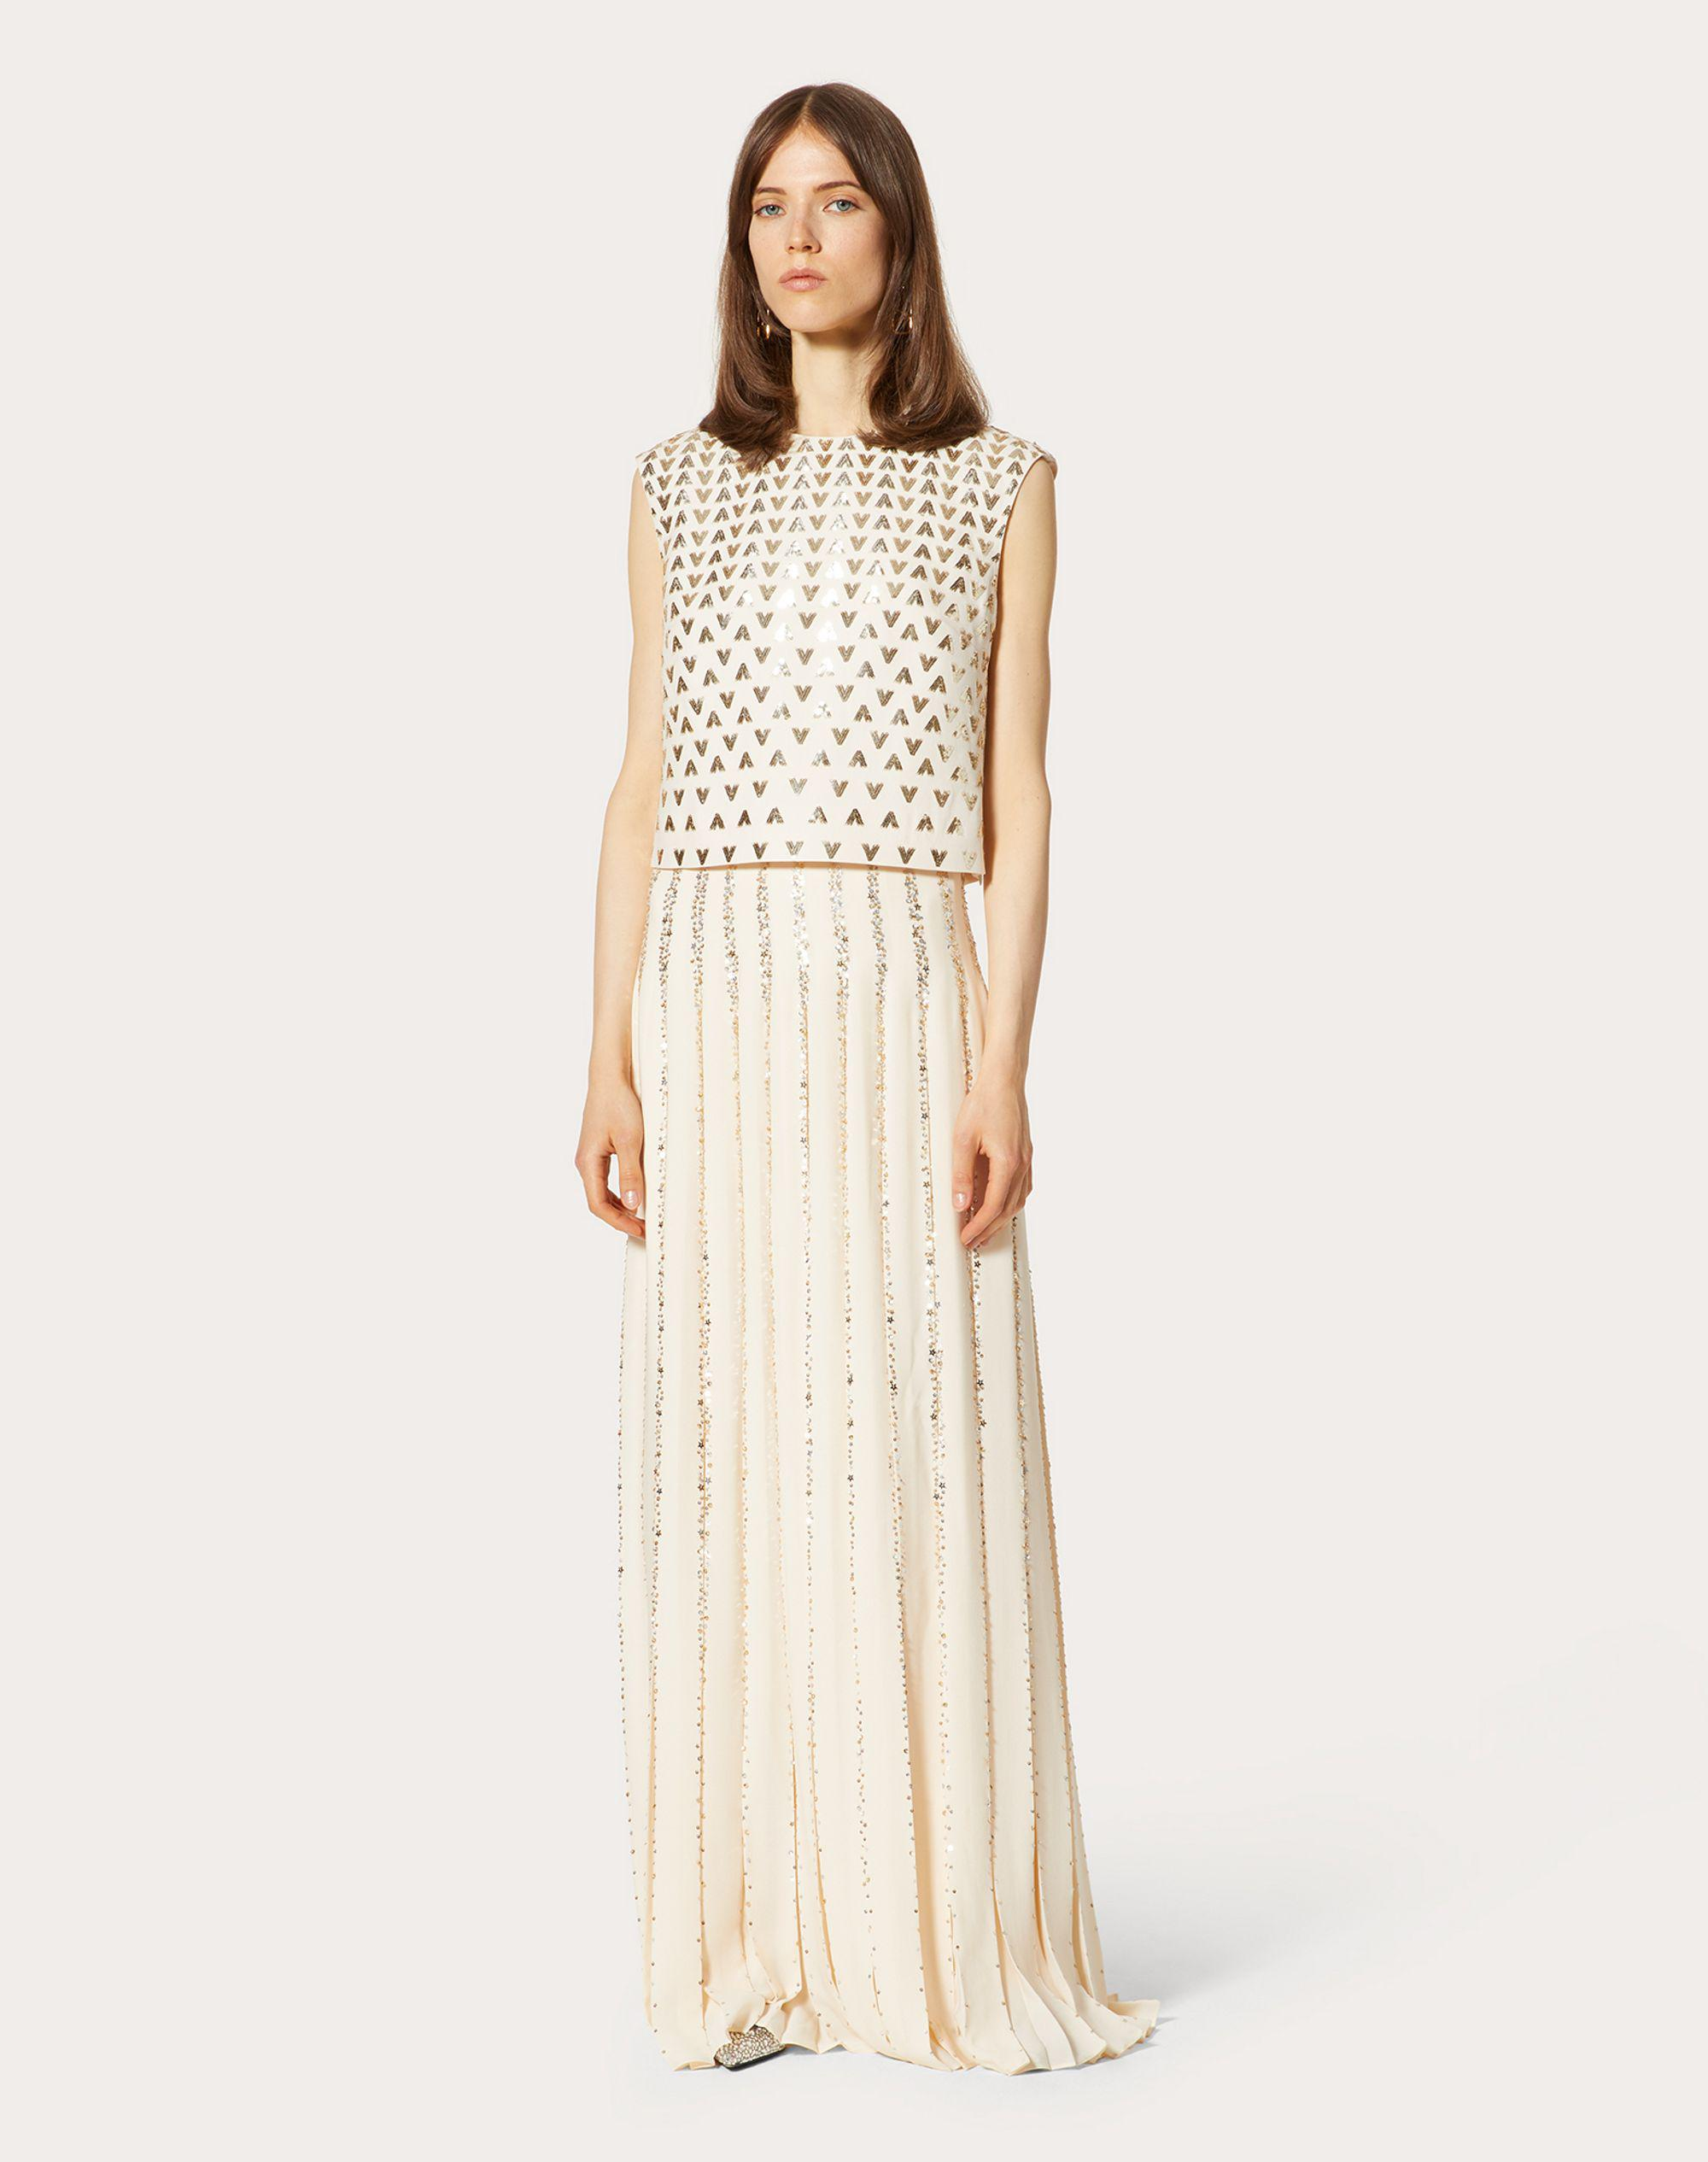 EMBROIDERED GEORGETTE EVENING DRESS 1